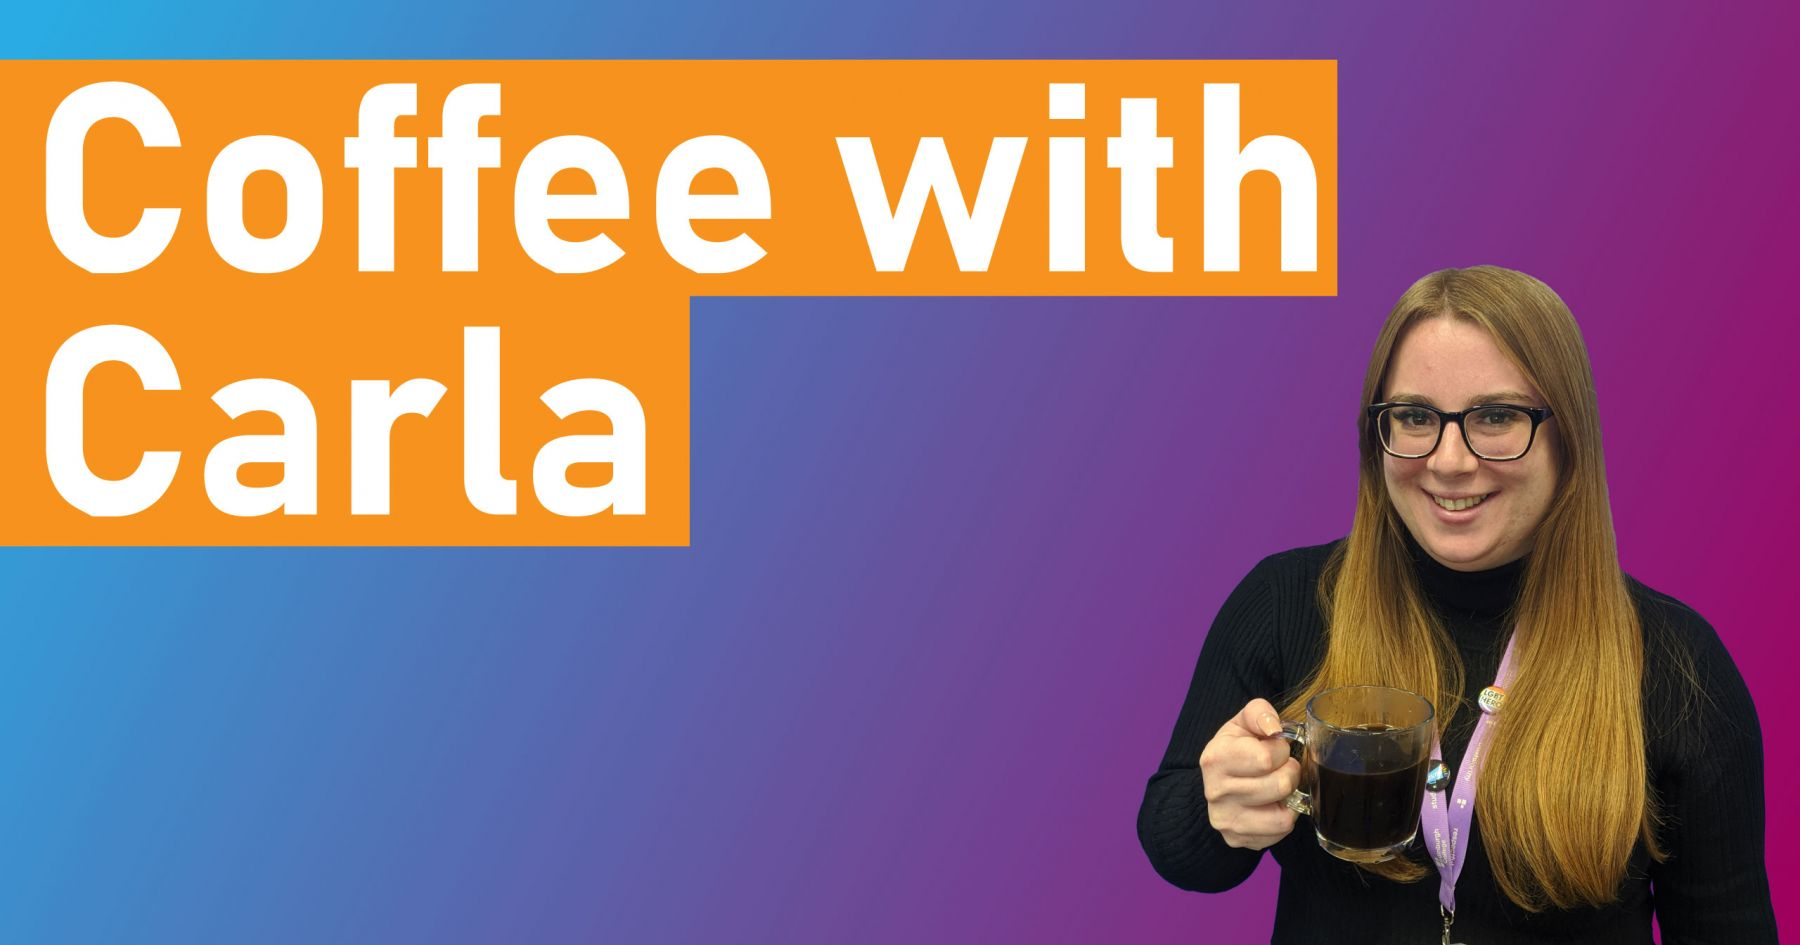 Coffee with Carla: Episode 1